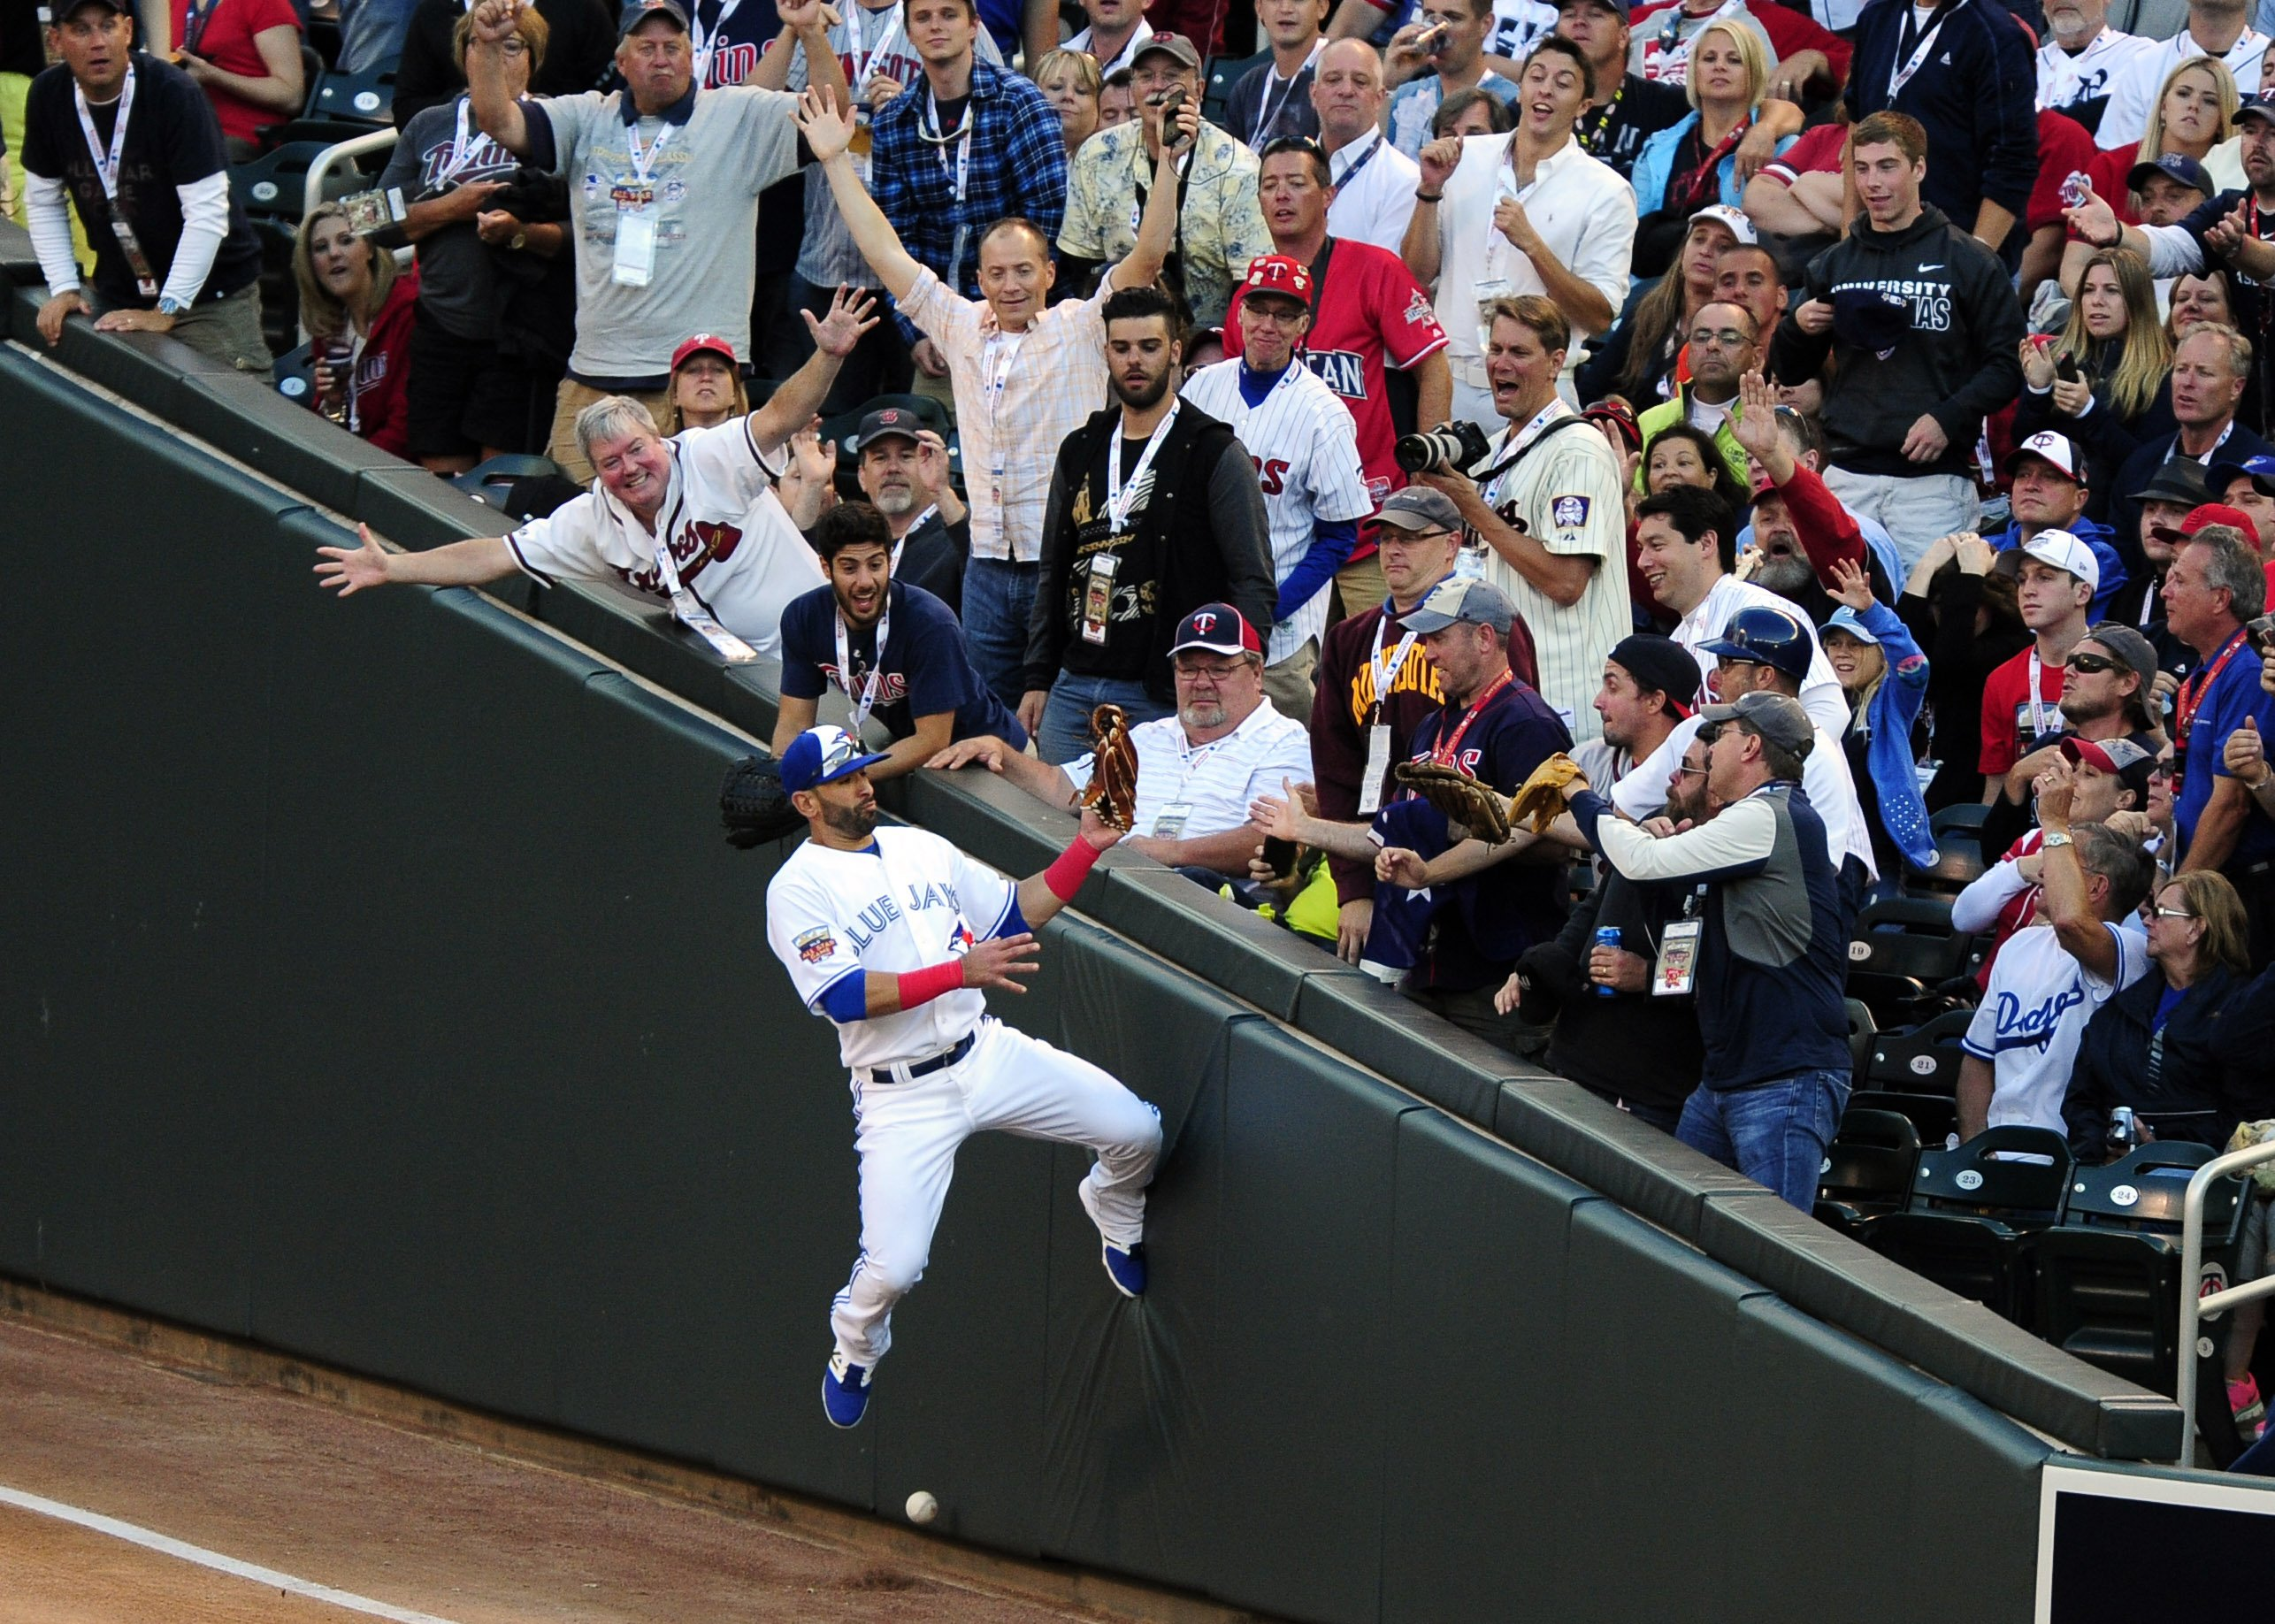 American League outfielder Jose Bautista (19) of the Toronto Blue Jays is unable to catch a fly ball in foul territory in the third inning during the 2014 MLB All Star Game at Target Field on July 15, 2014 in Minneapolis.